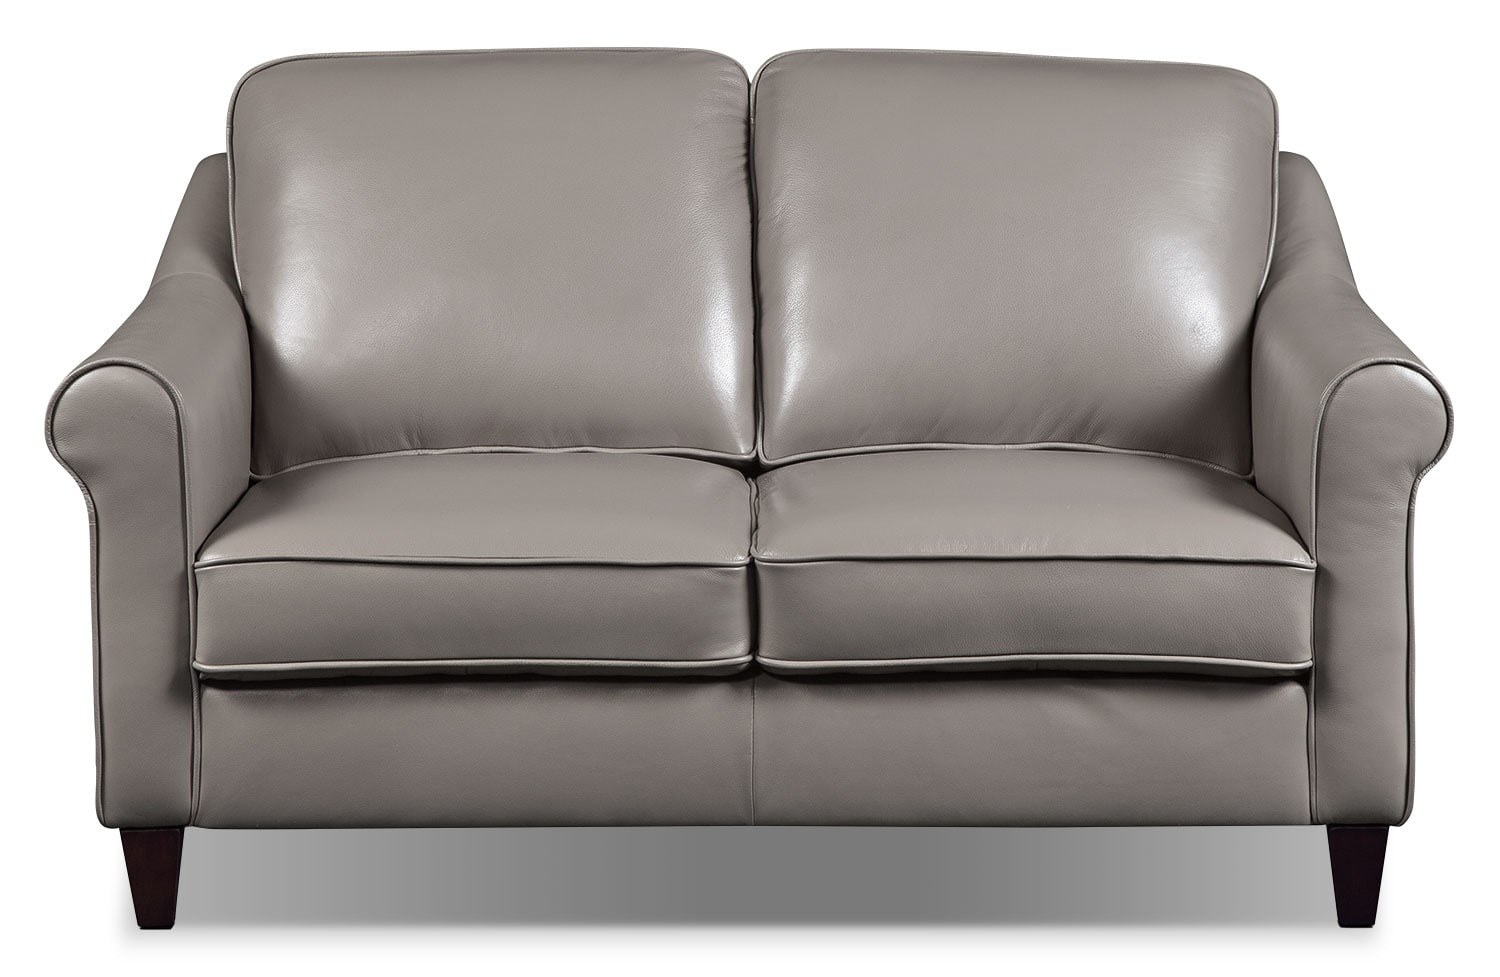 Living Room Furniture - Lexa Genuine Leather Loveseat – Taupe